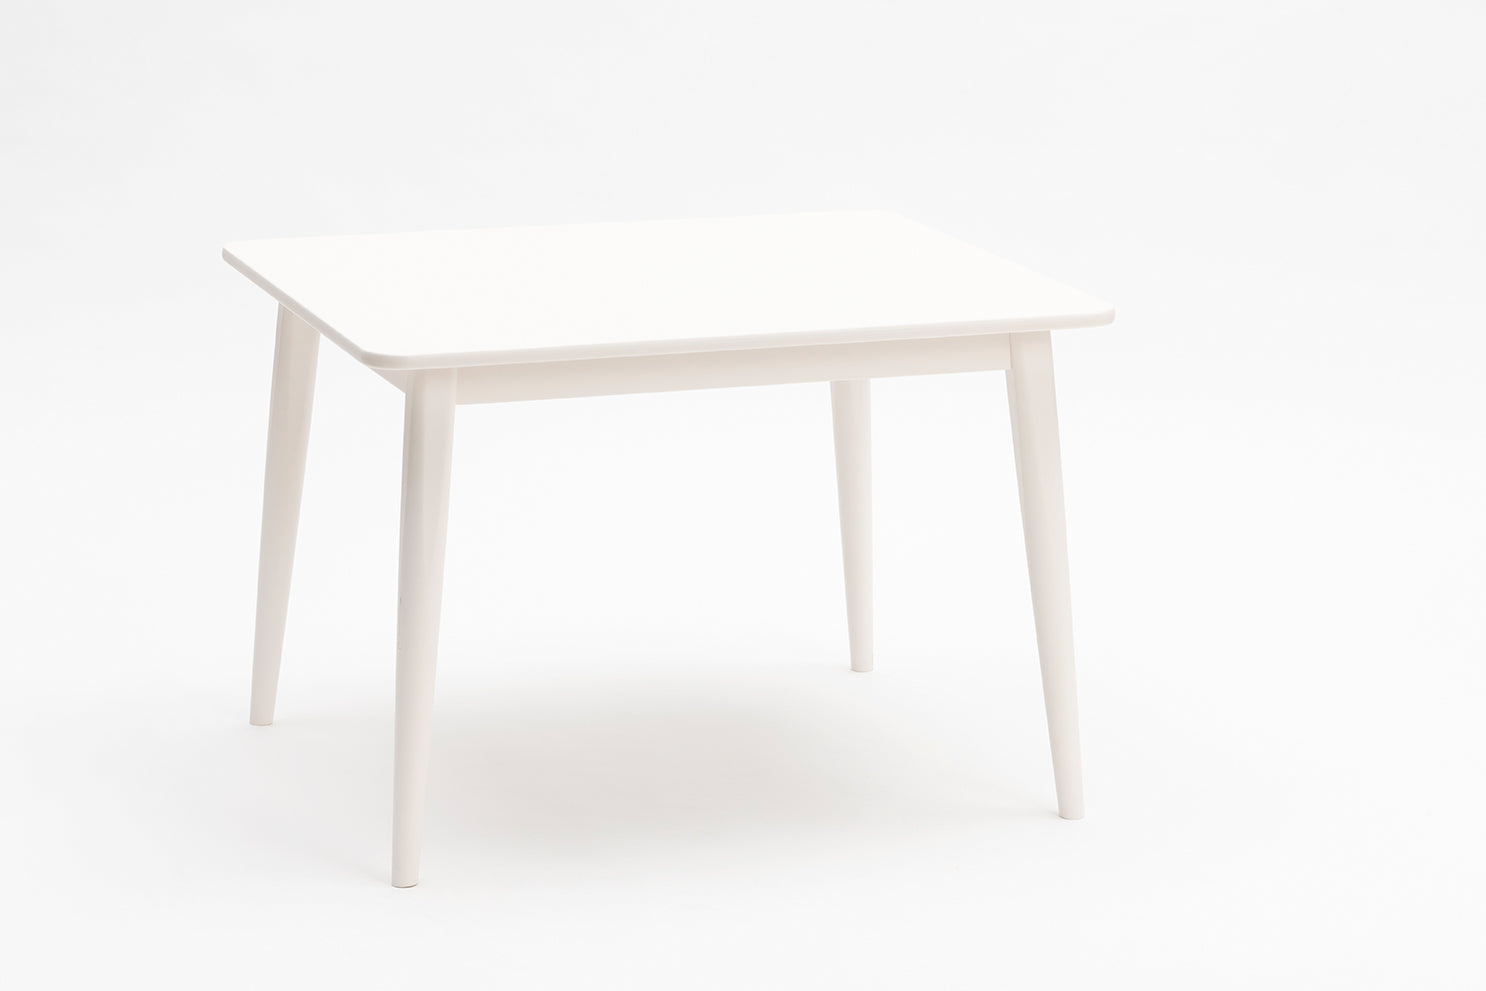 Wooden Play Table - White 1